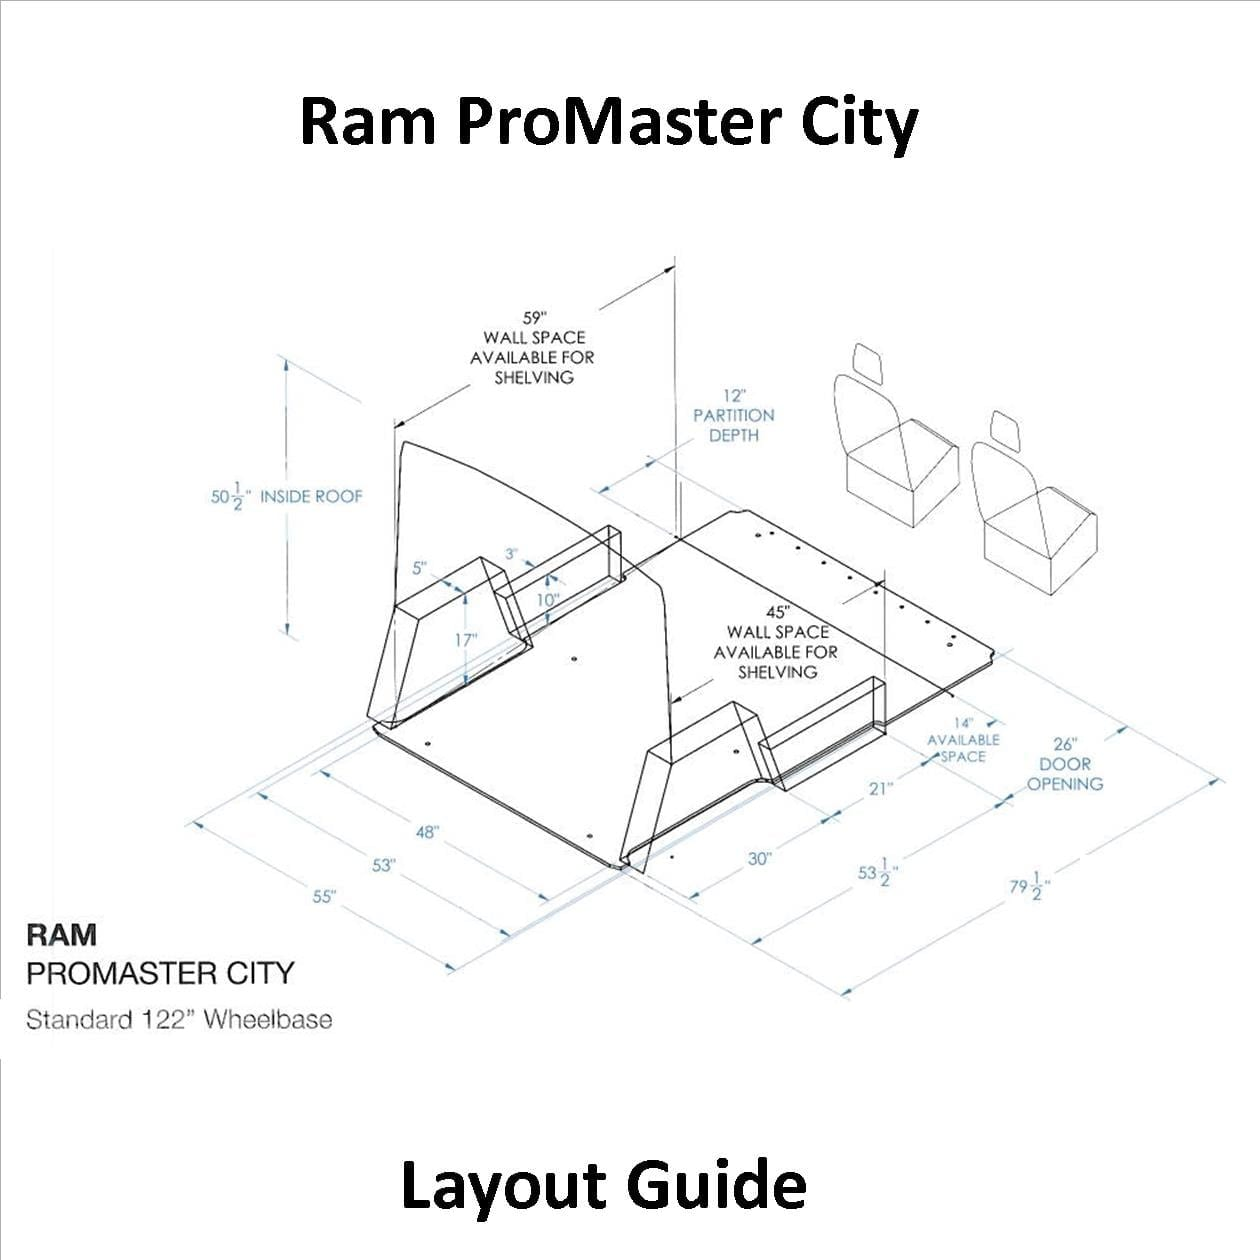 Ram Promaster City Layout Guide